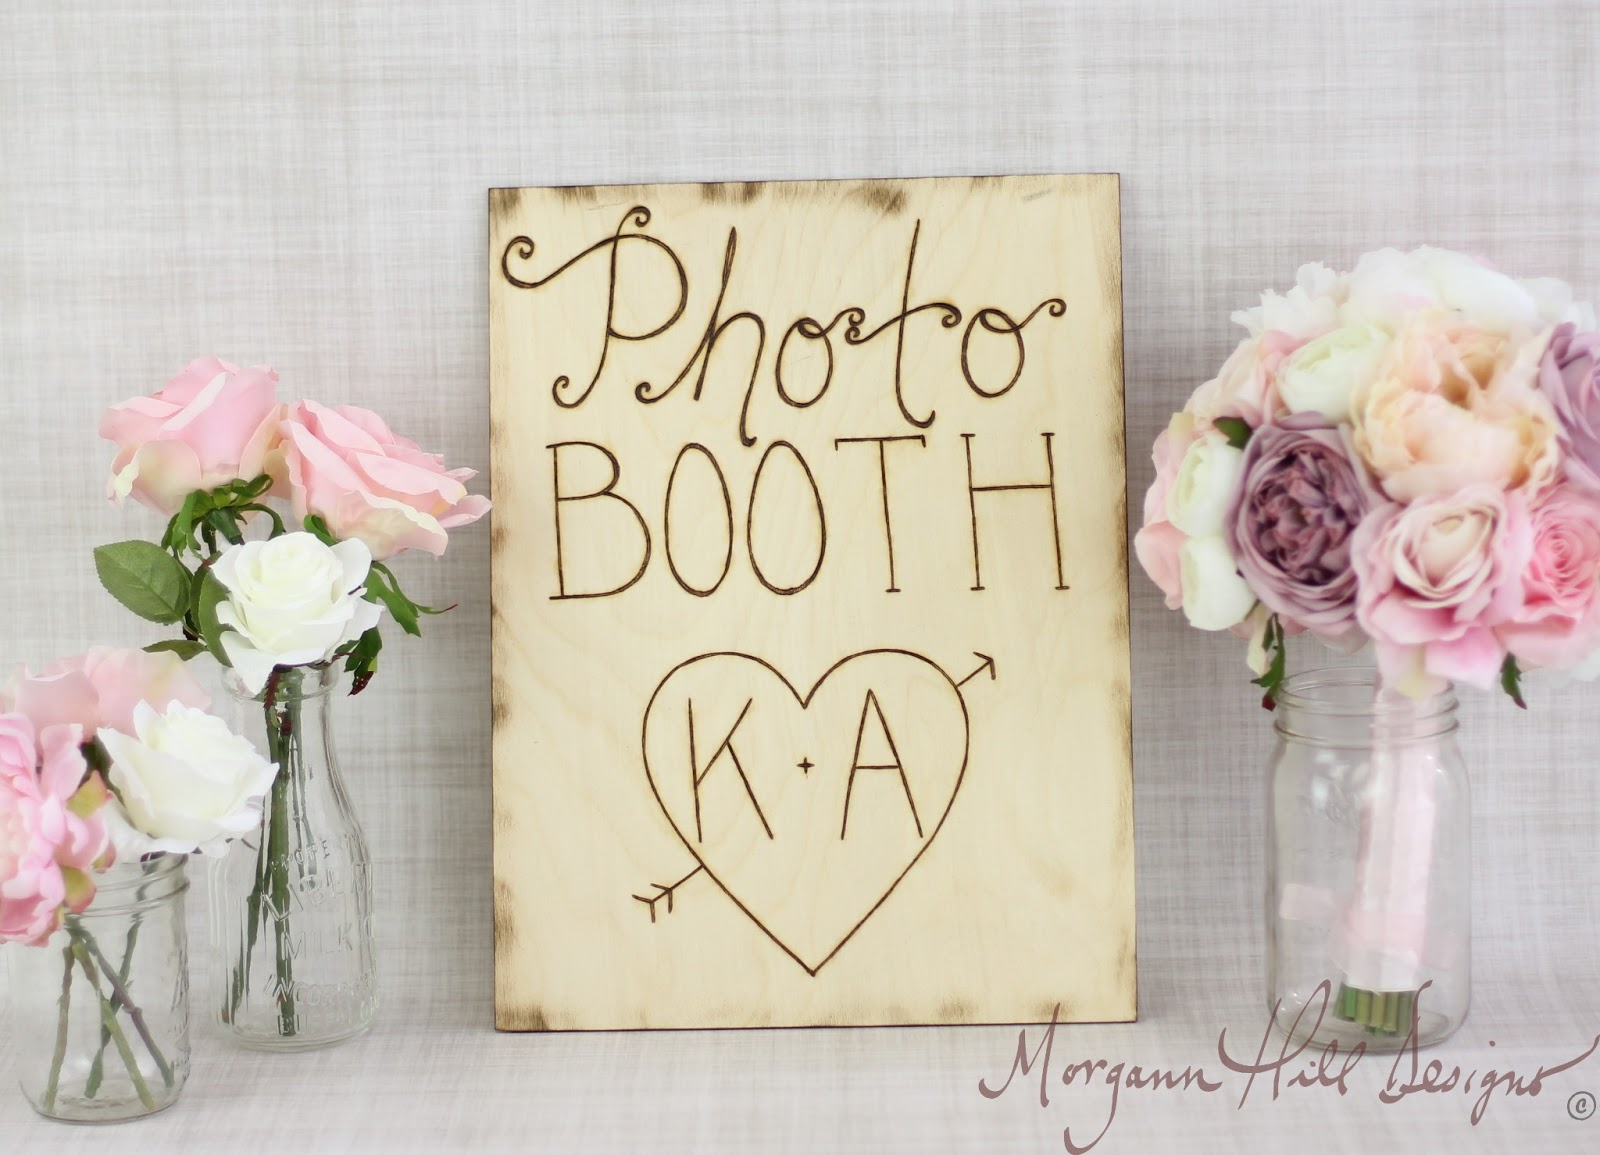 Morgann Hill Designs: Personalized Rustic Photo Booth Sign Barn ...